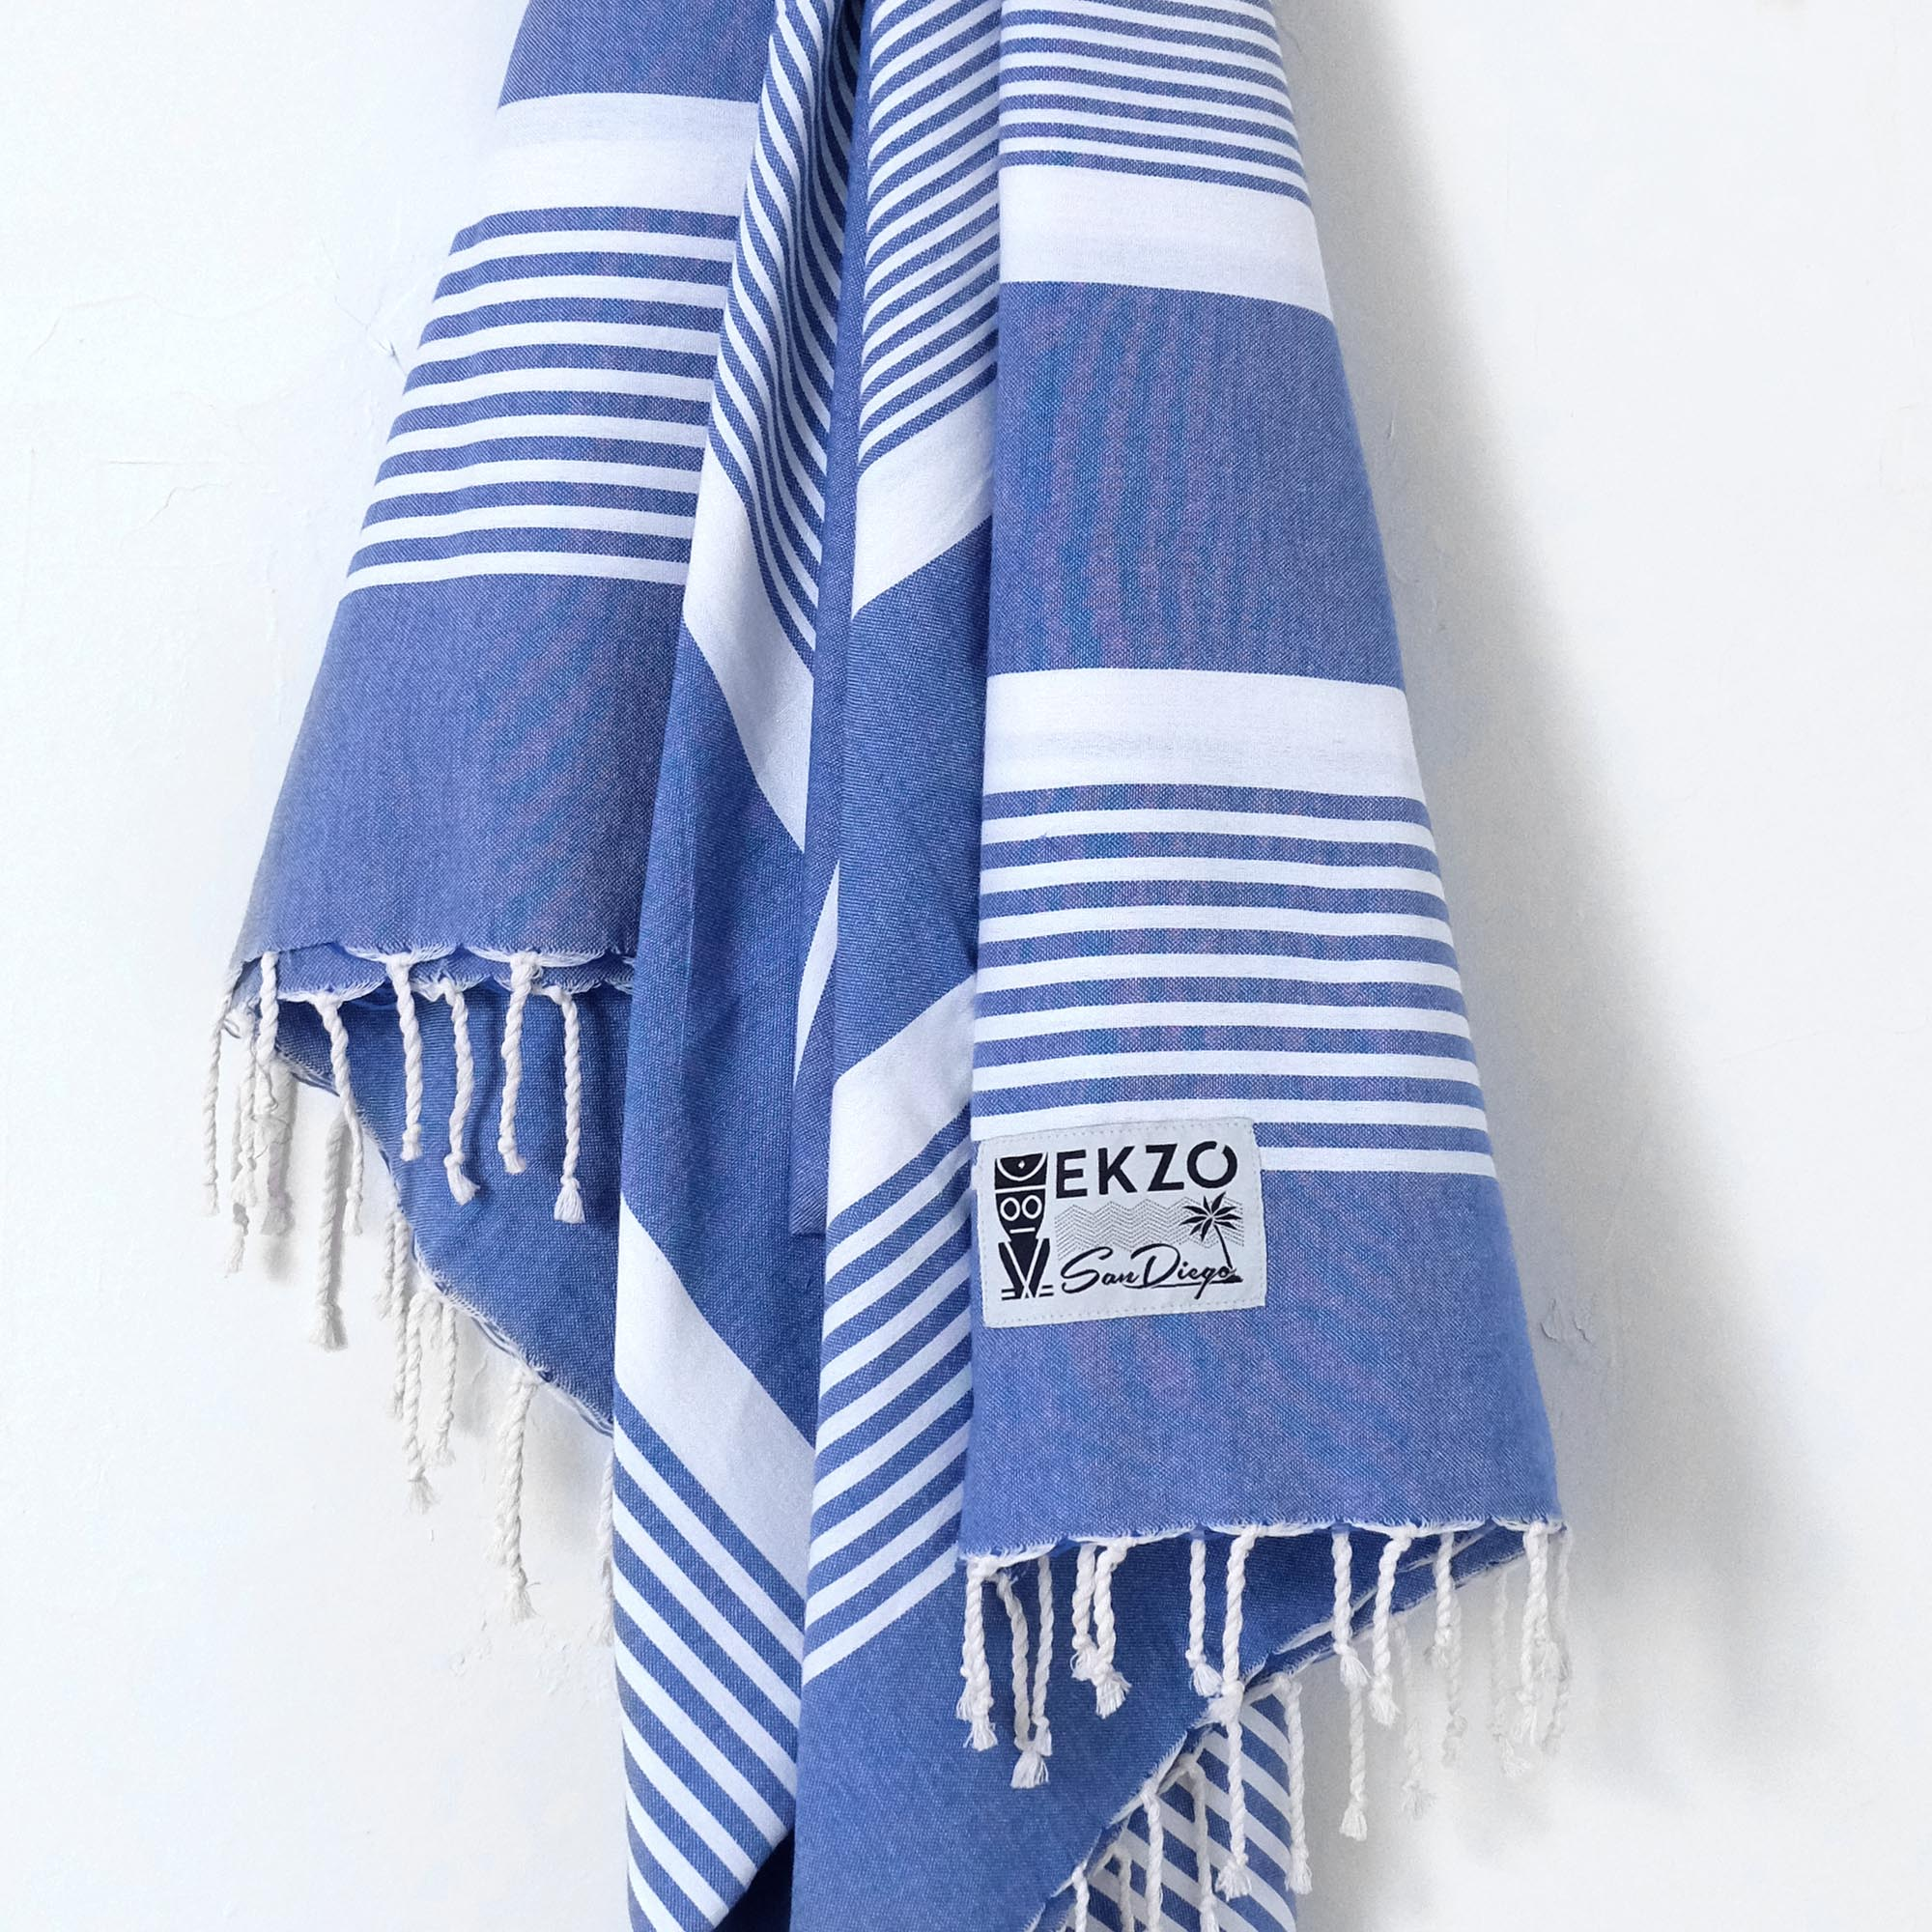 Big Blue - Giant Beach Towel - EKZO